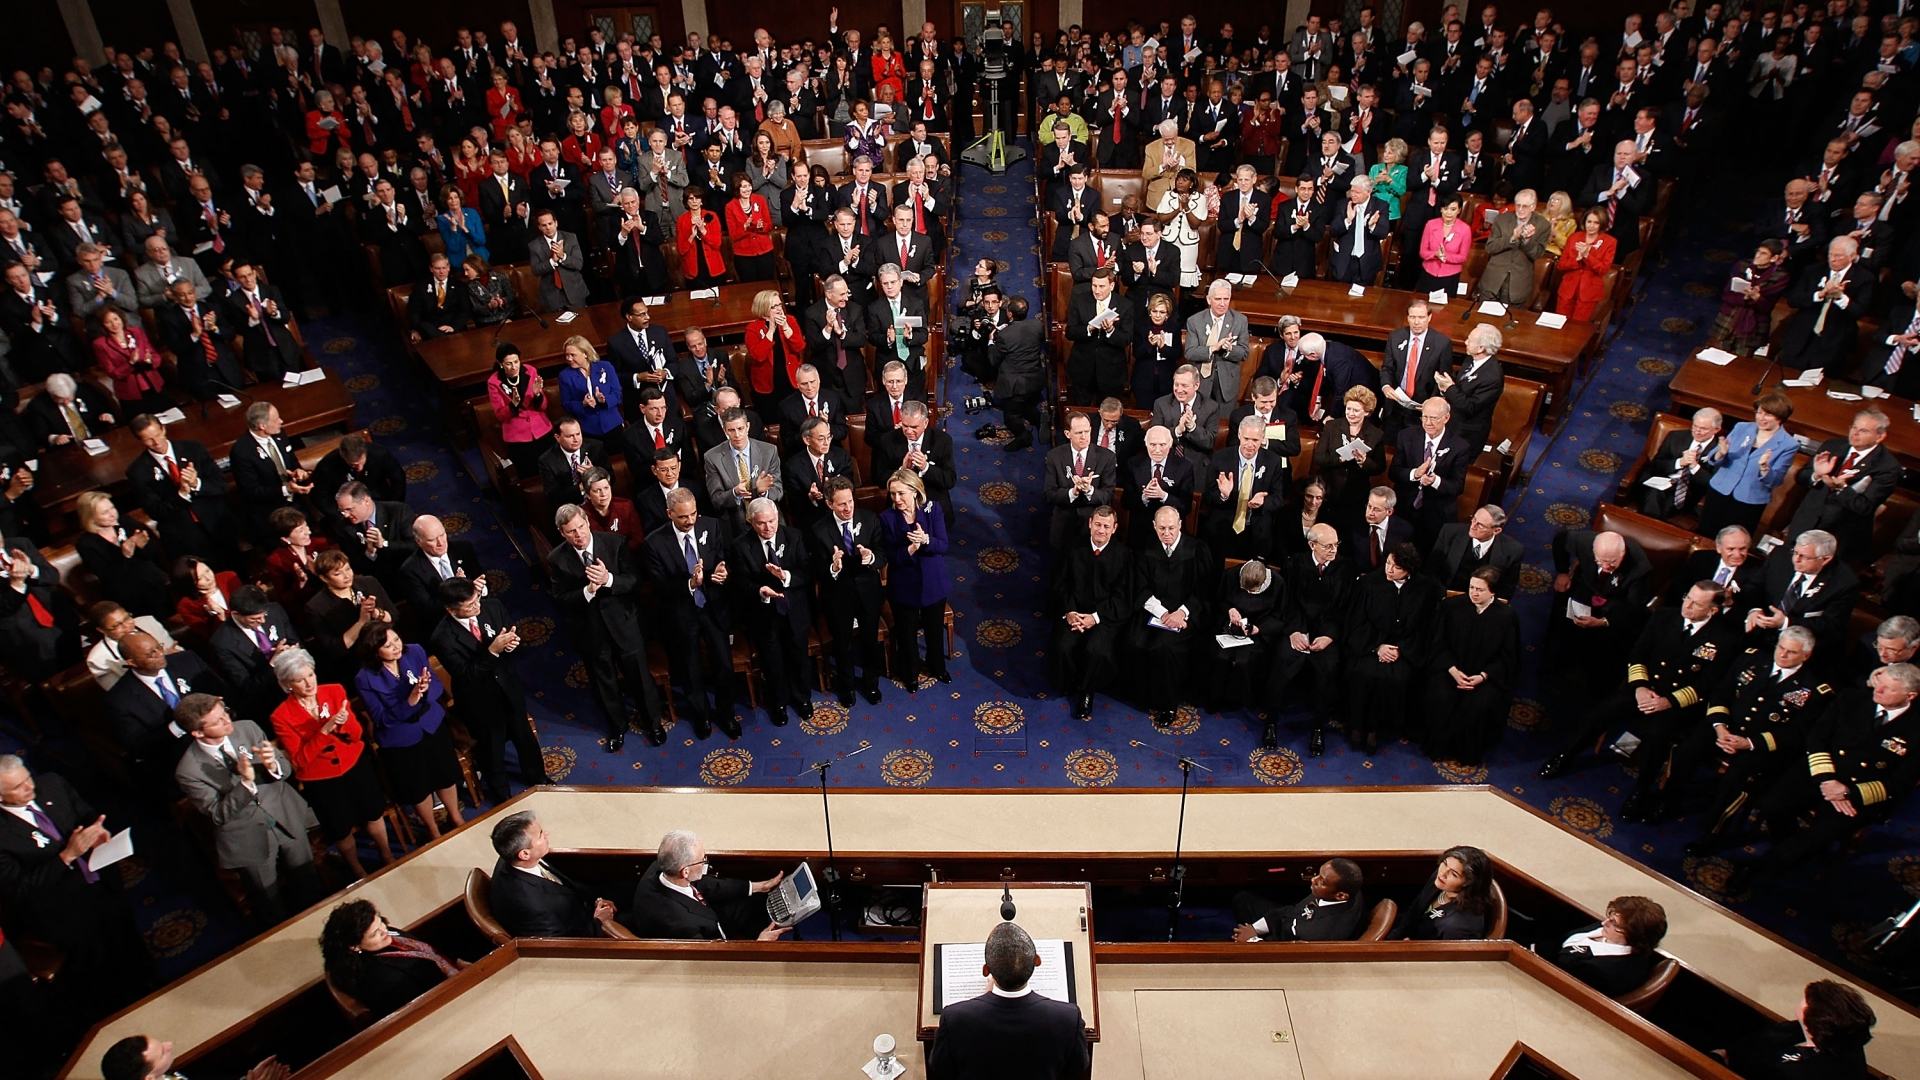 U.S. President Barack Obama delivering his State of the Union speech on January 25, 2011 in Washington, DC. (Credit: Chip Somodevilla/Getty Images)